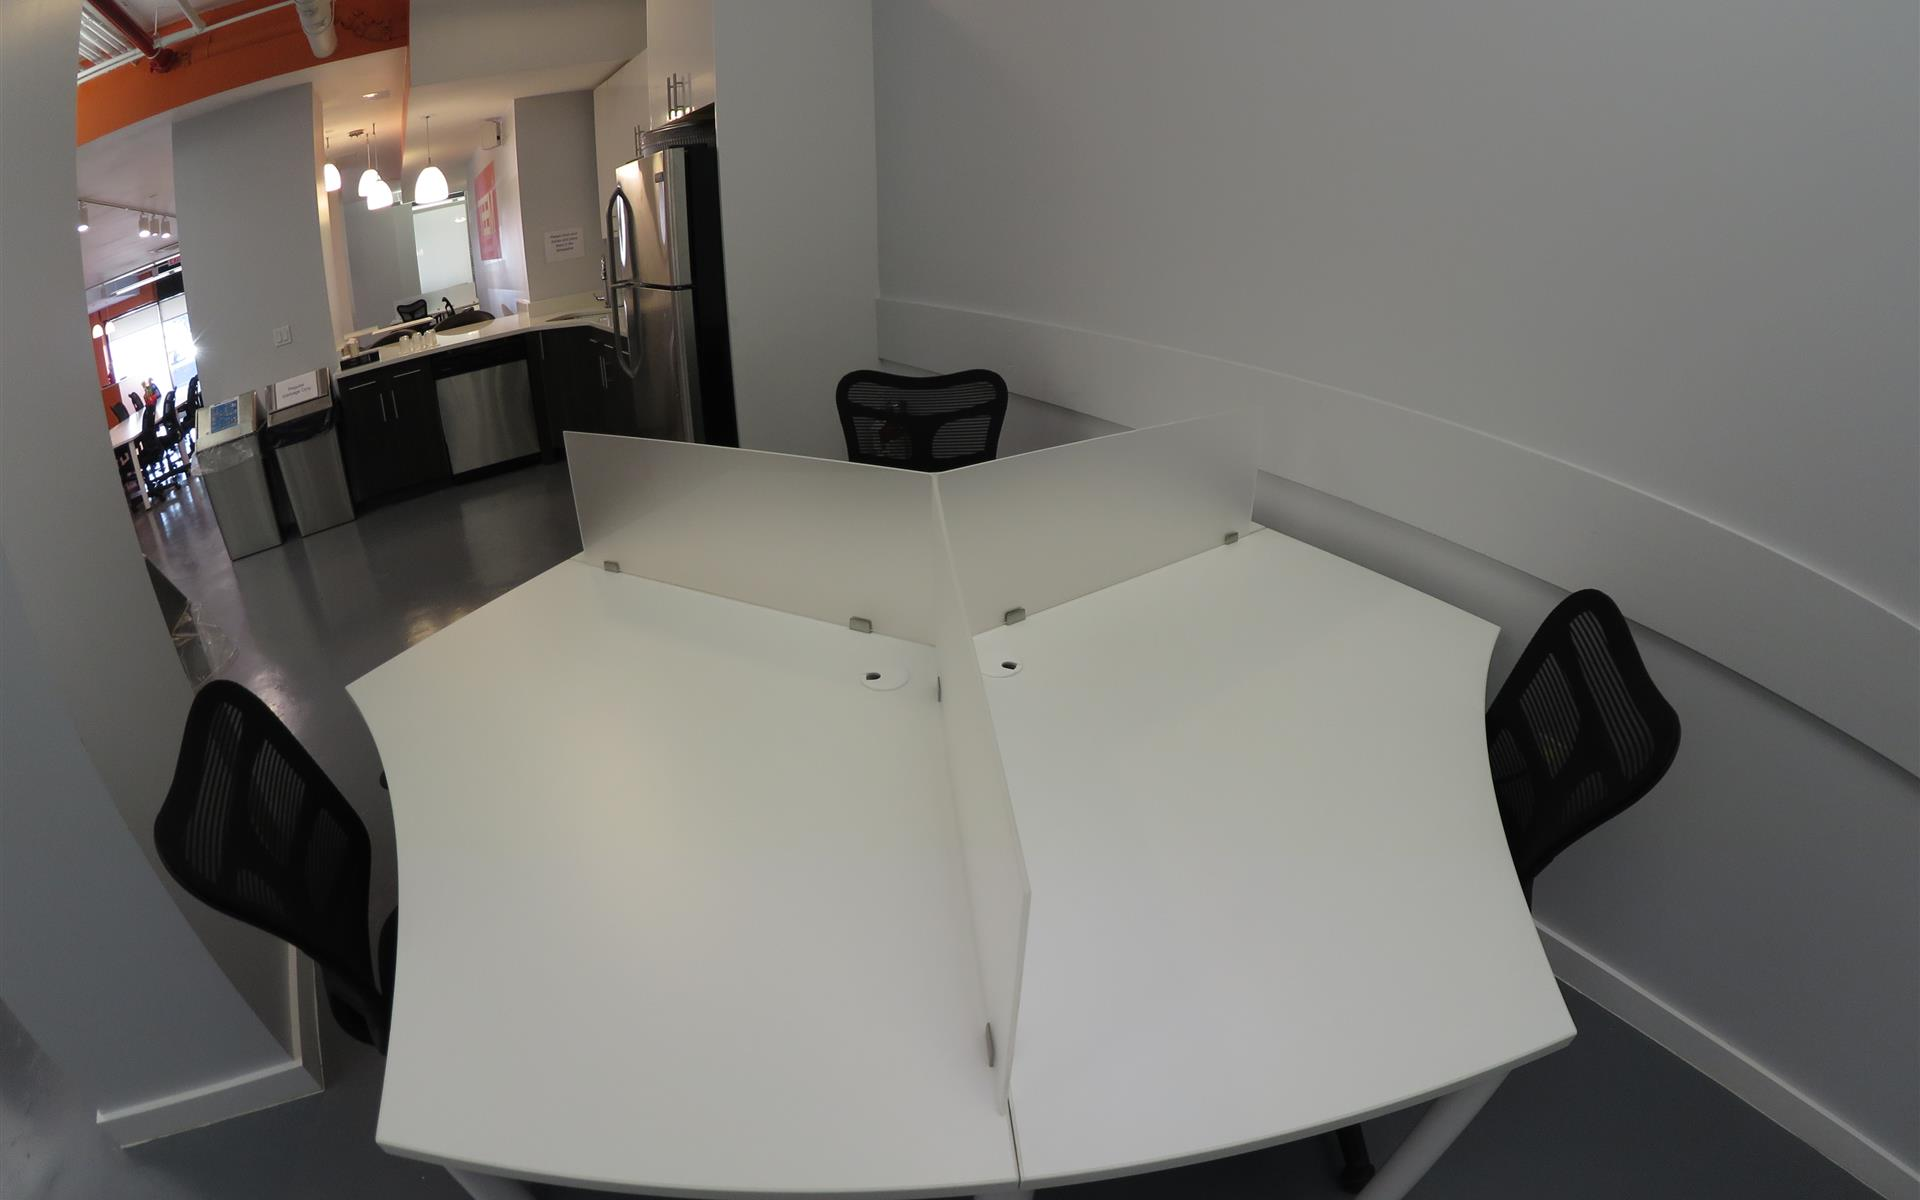 TEEM Coworking - Harlem NYC - Semi-Private Desk